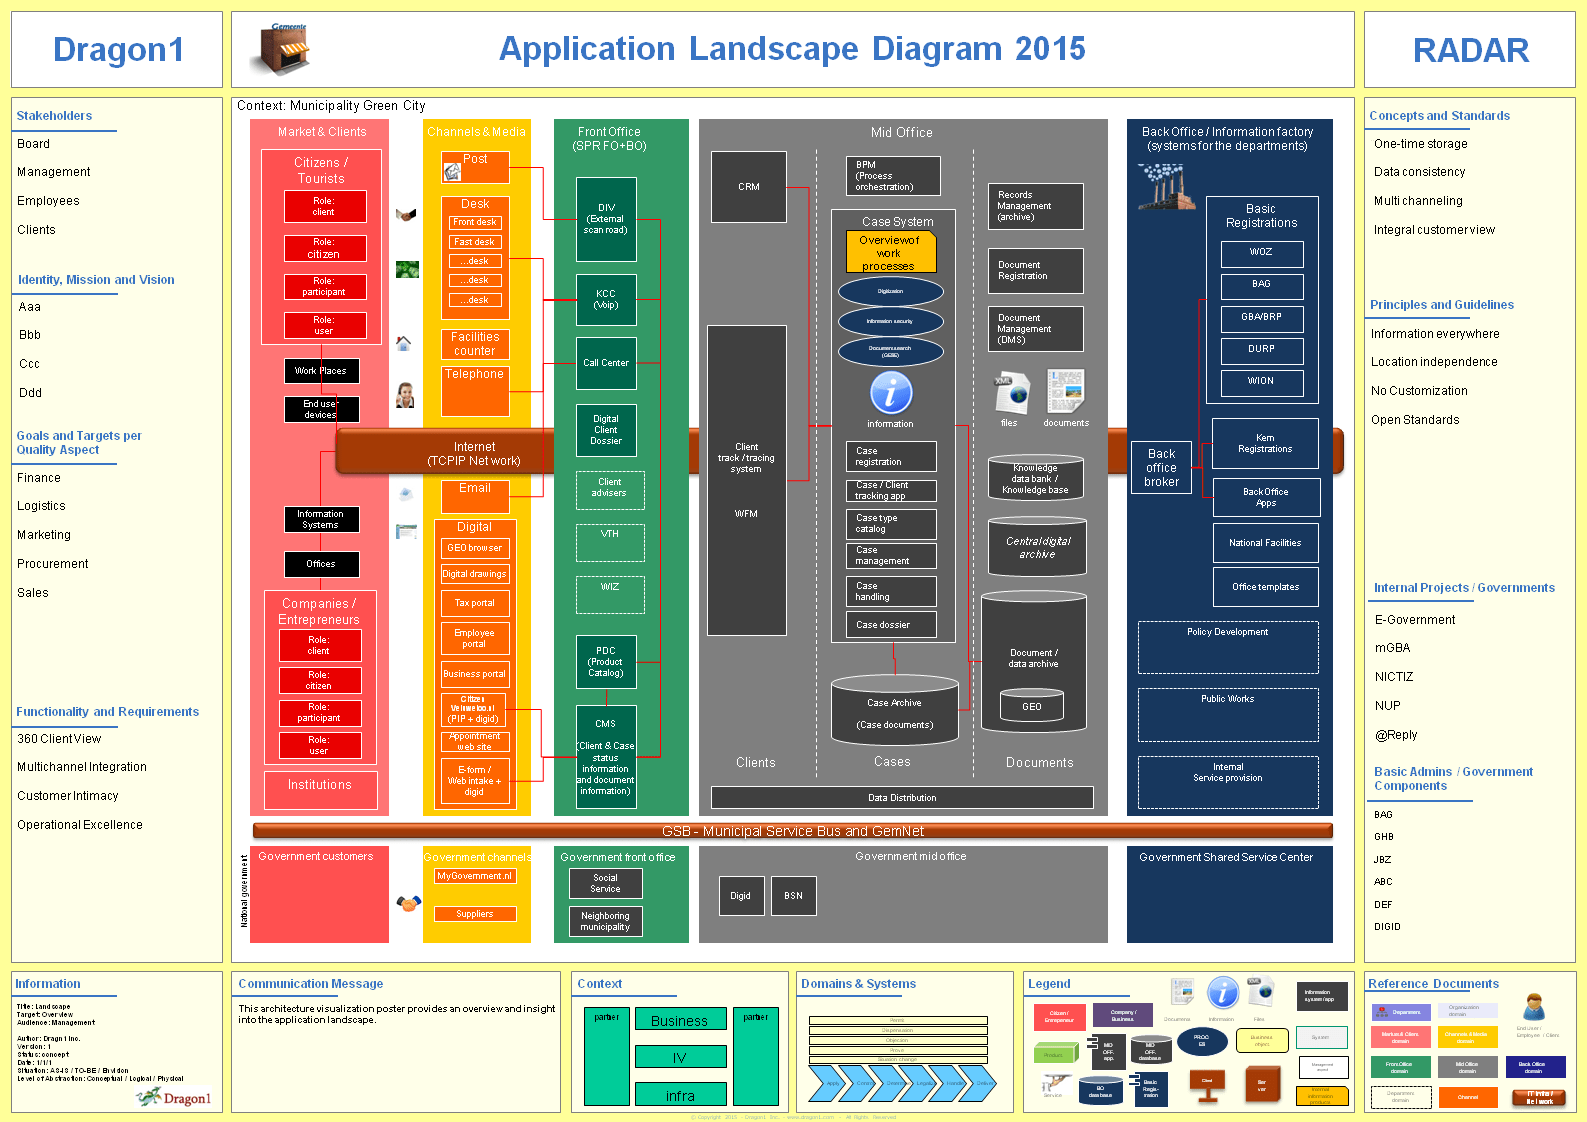 visio application diagram wiring house to shed how create an landscape dragon1